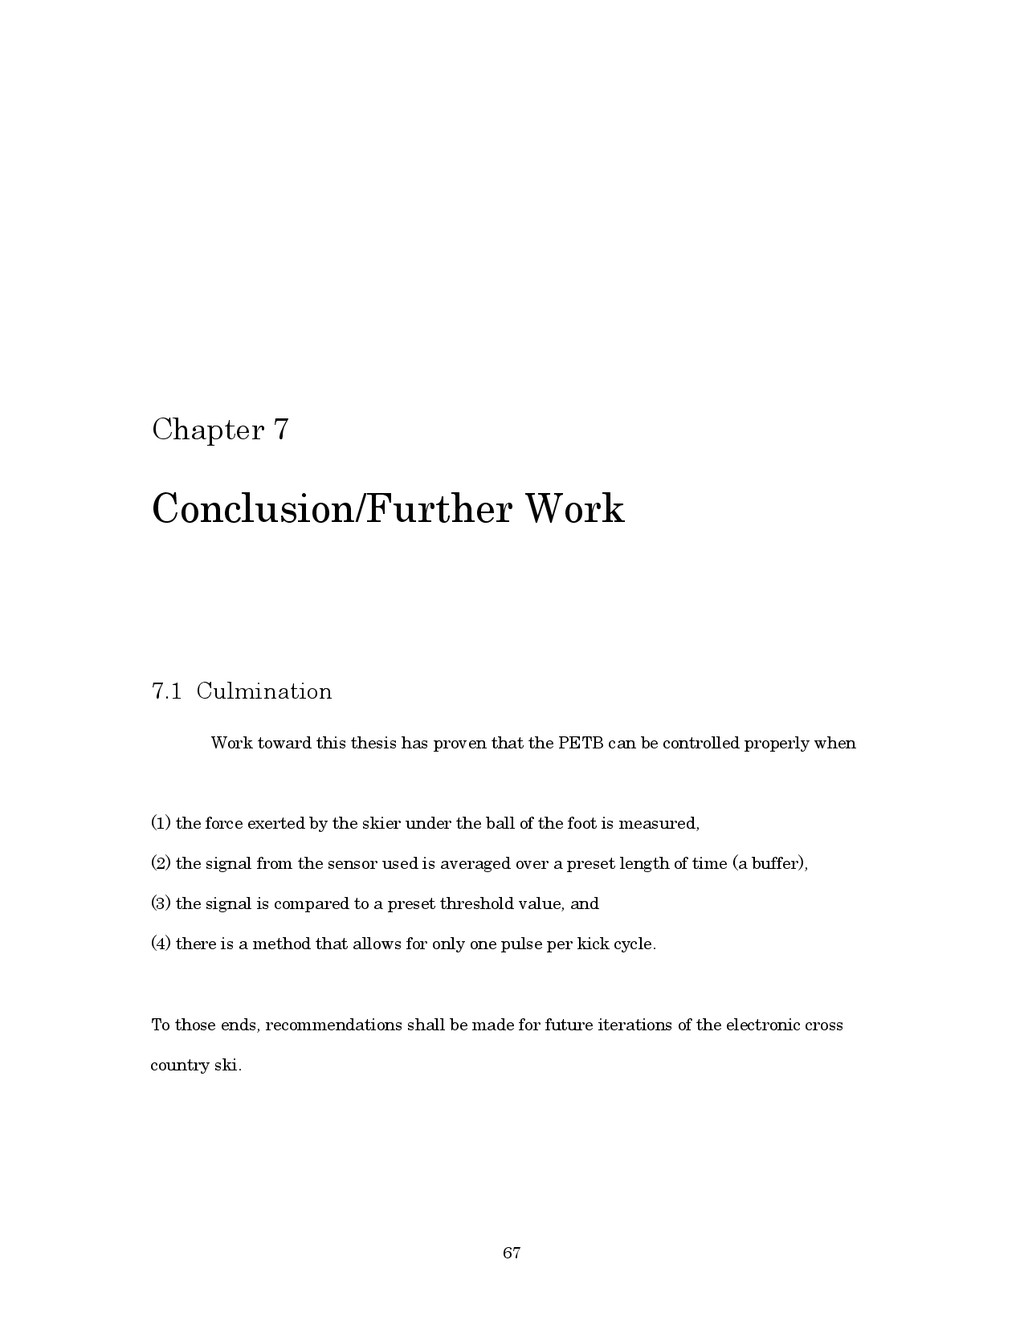 67 Chapter 7 Conclusion/Further Work 7.1 Culmin...